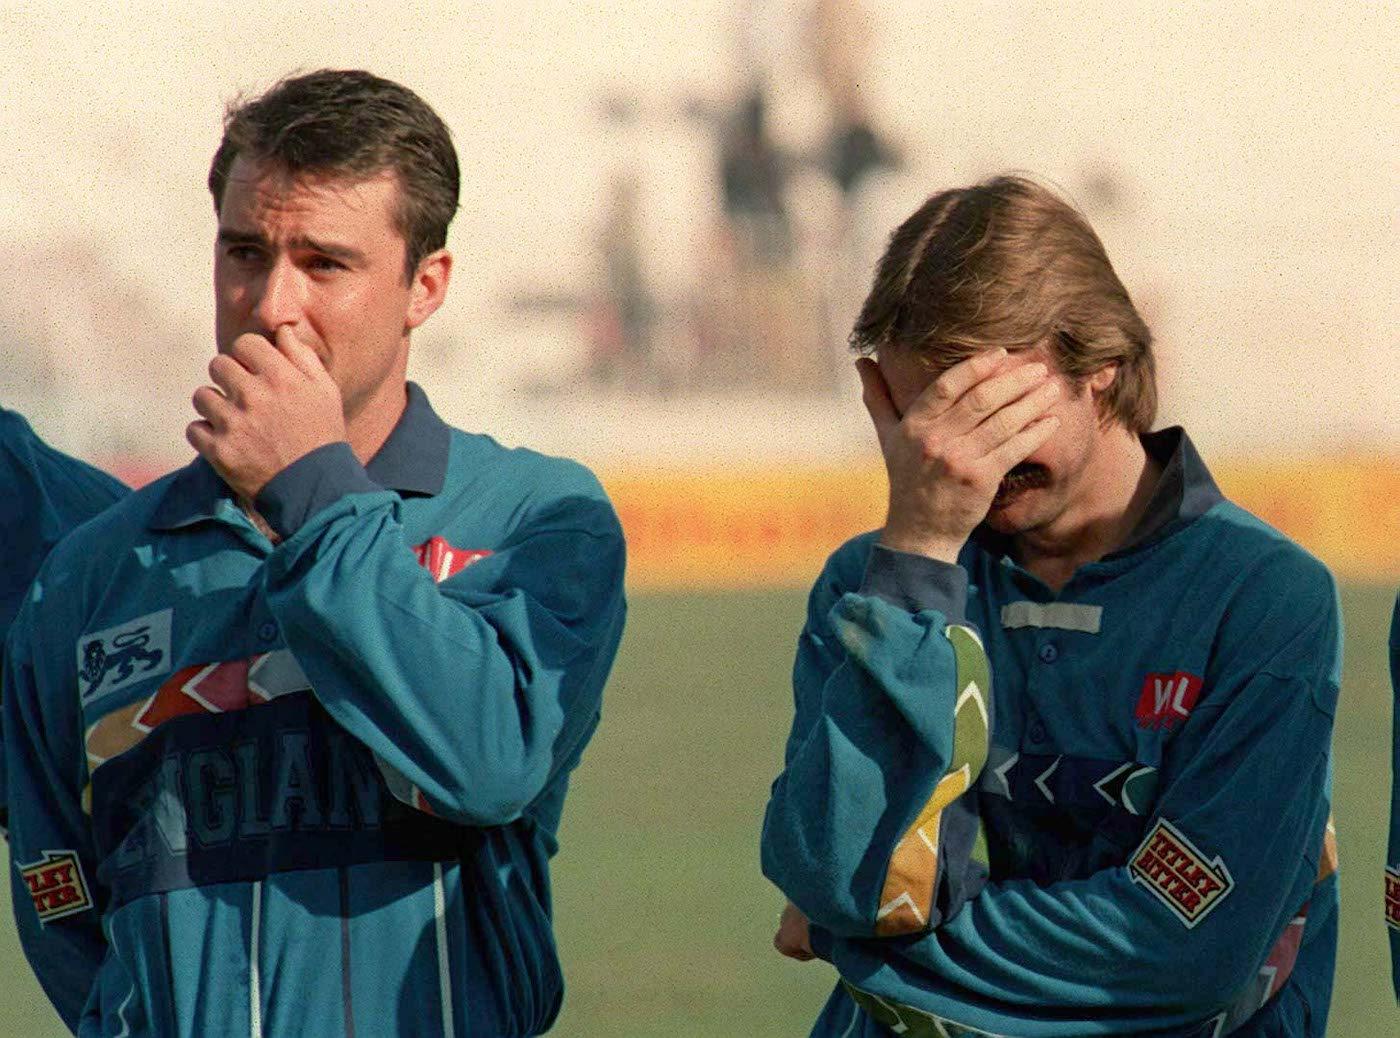 England are crestfallen after their quarter-final defeat to Sri Lanka in the 1996 World Cup